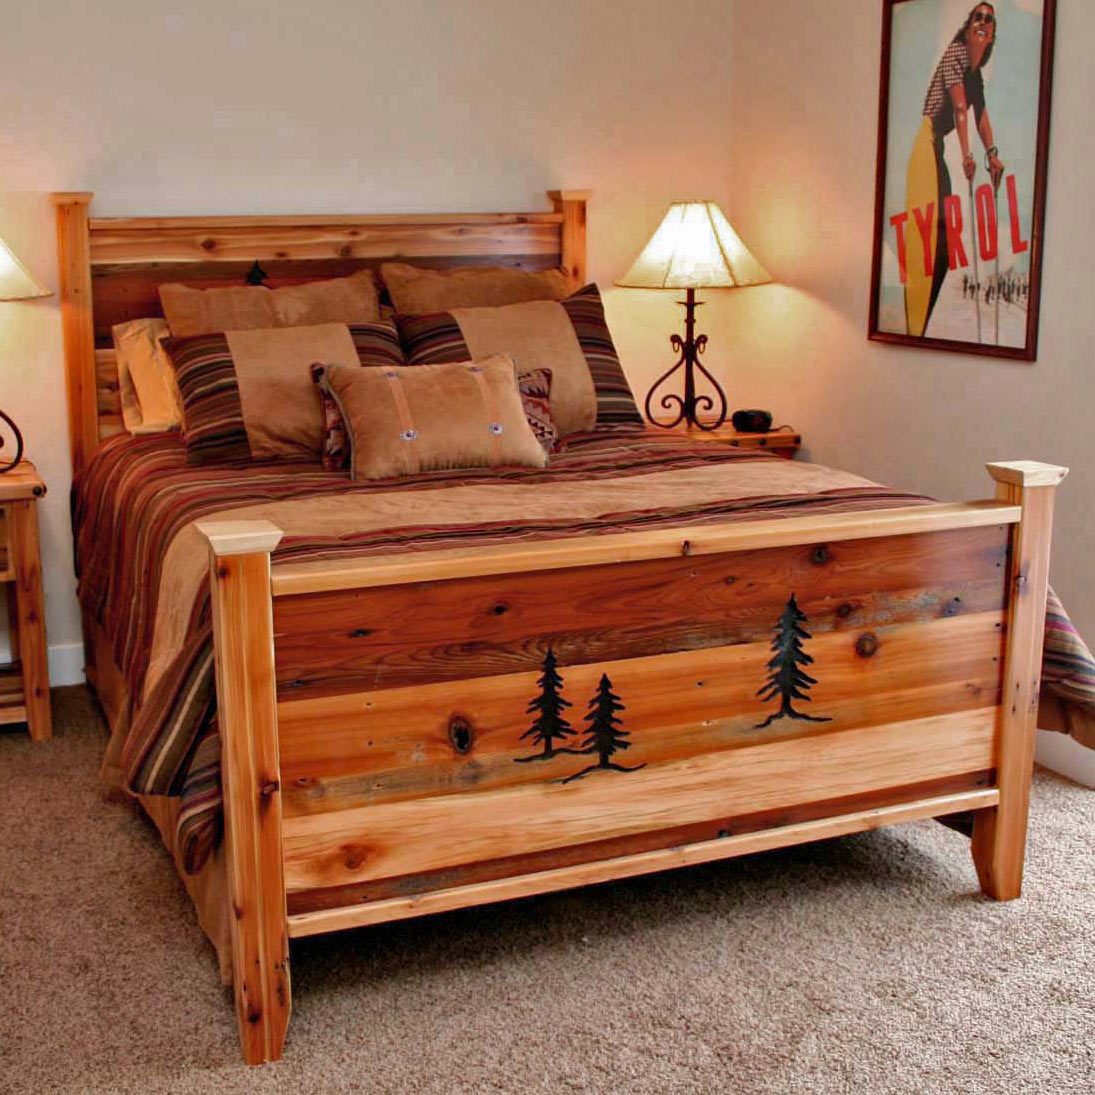 Black Forest Decor Barnwood bed with tree carvings - queen